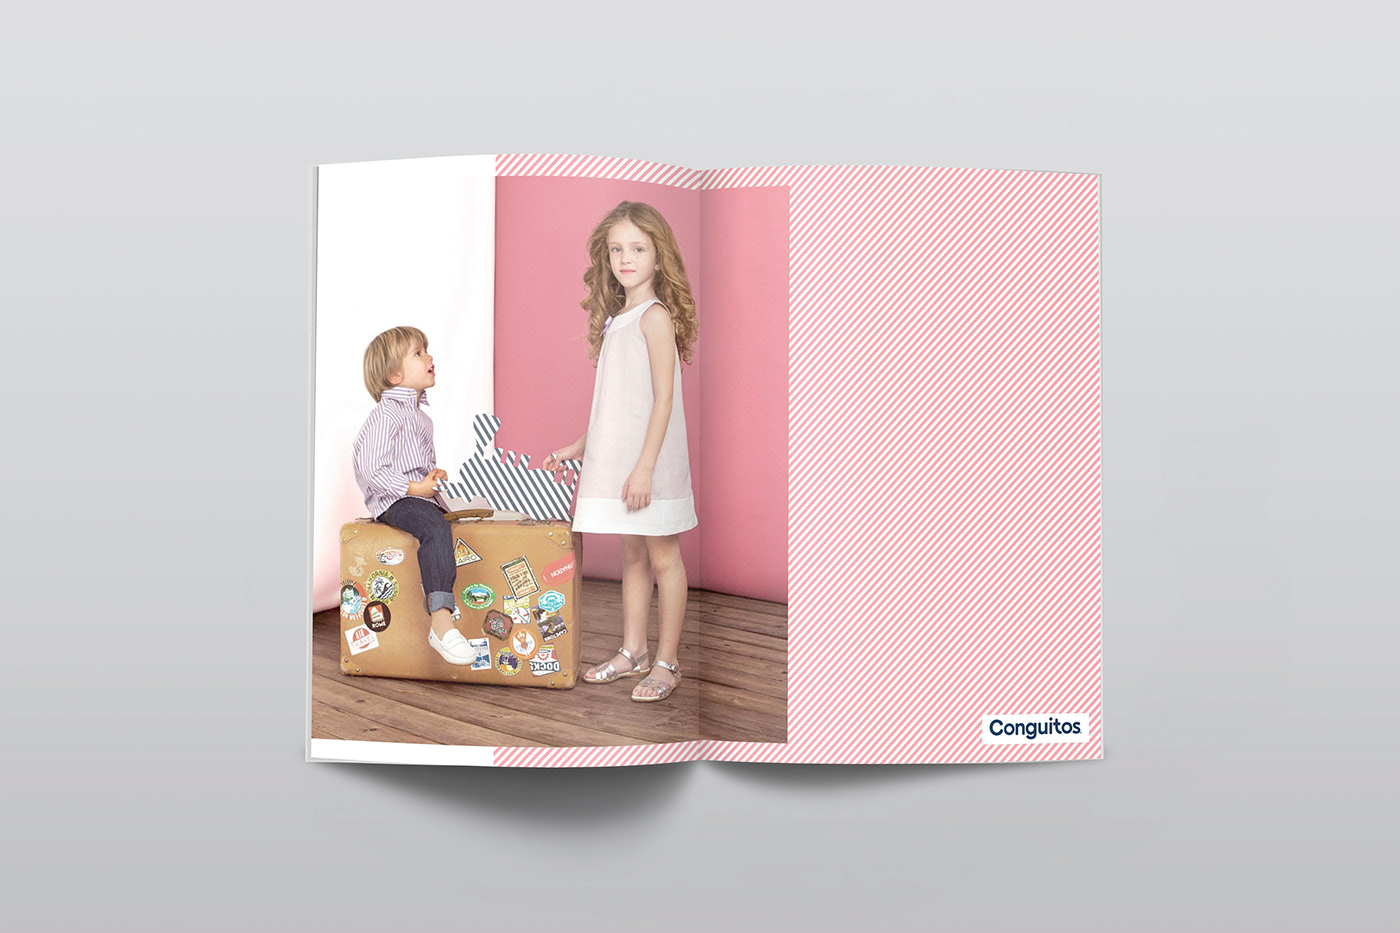 design graphic Lookbook spring Conguitos photo kid Clothing shoes Catalogue